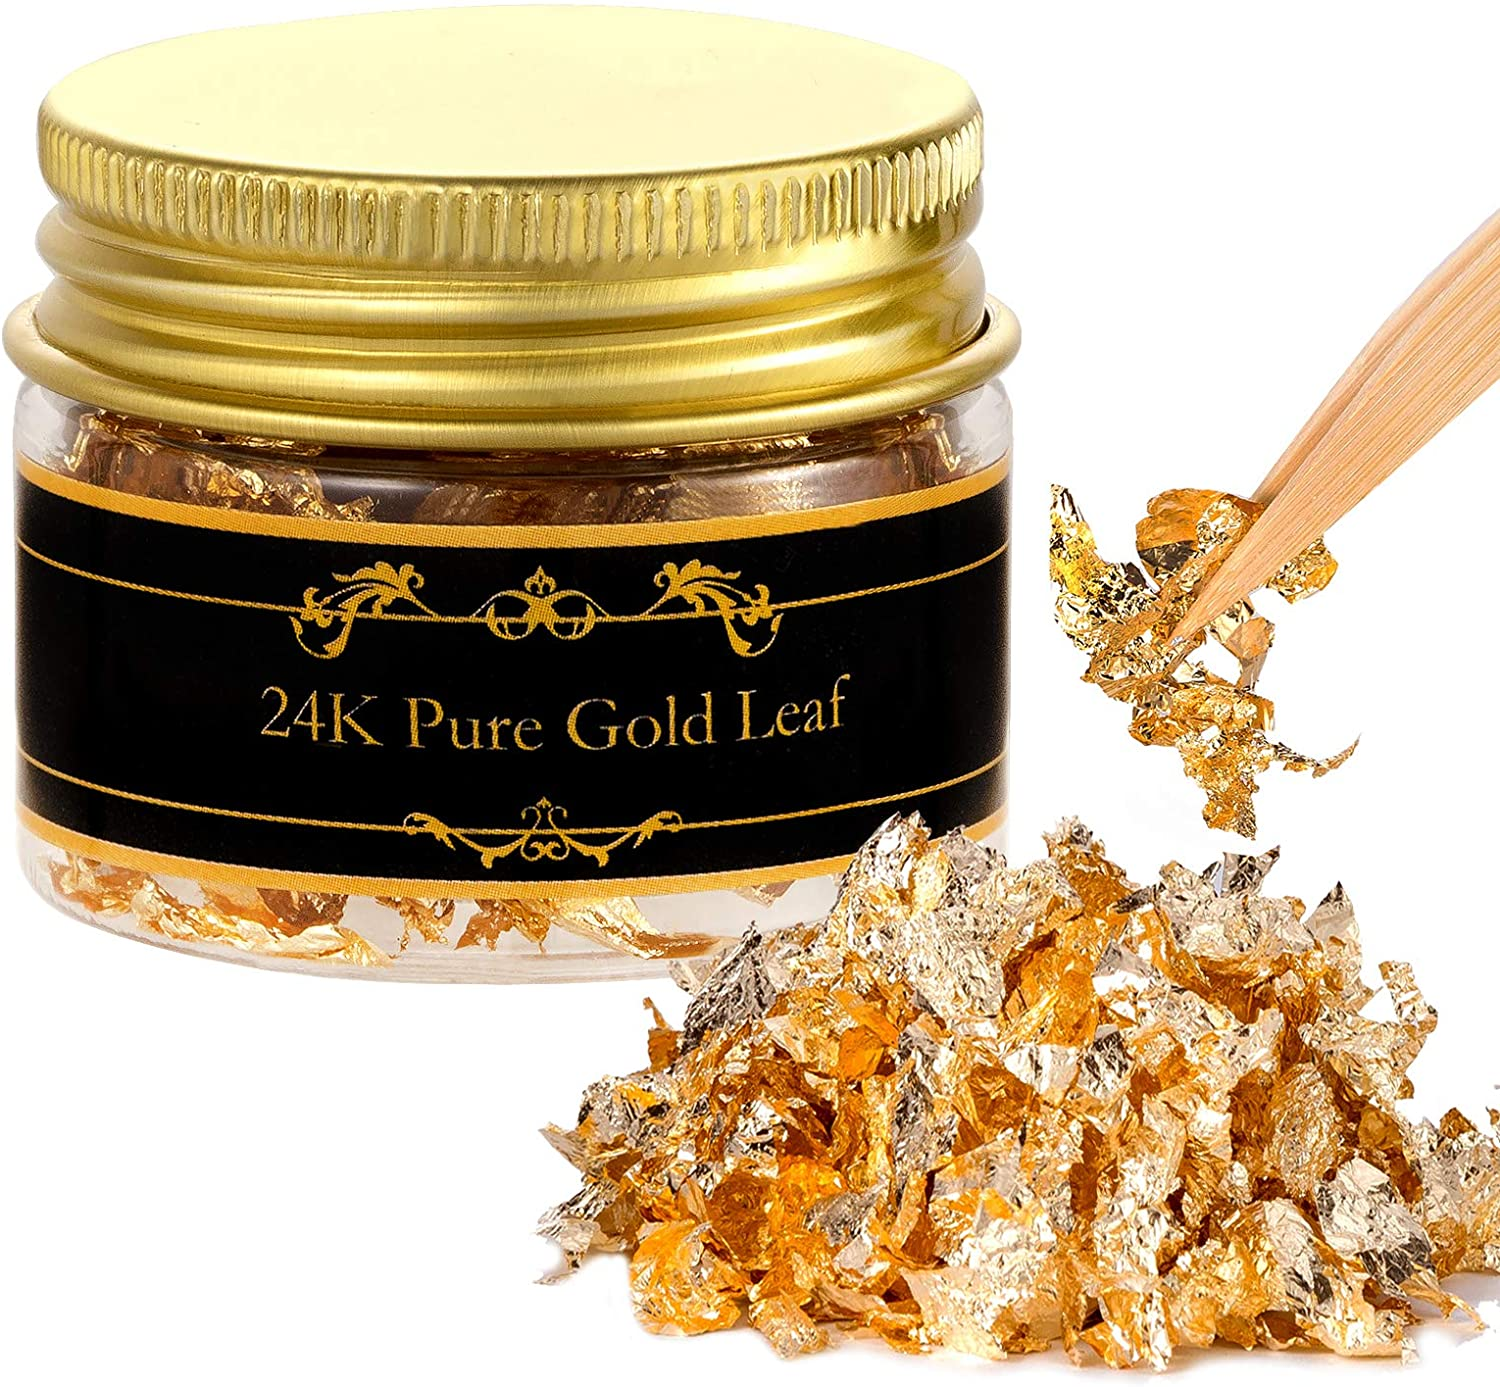 Edible Genuine Gold Leaf Flakes with Tweezers - 30mg 24K Gold Leaf Decorative Dishes, Genuine Gold Flakes for Cakes, Cooking & Beauty Decorative